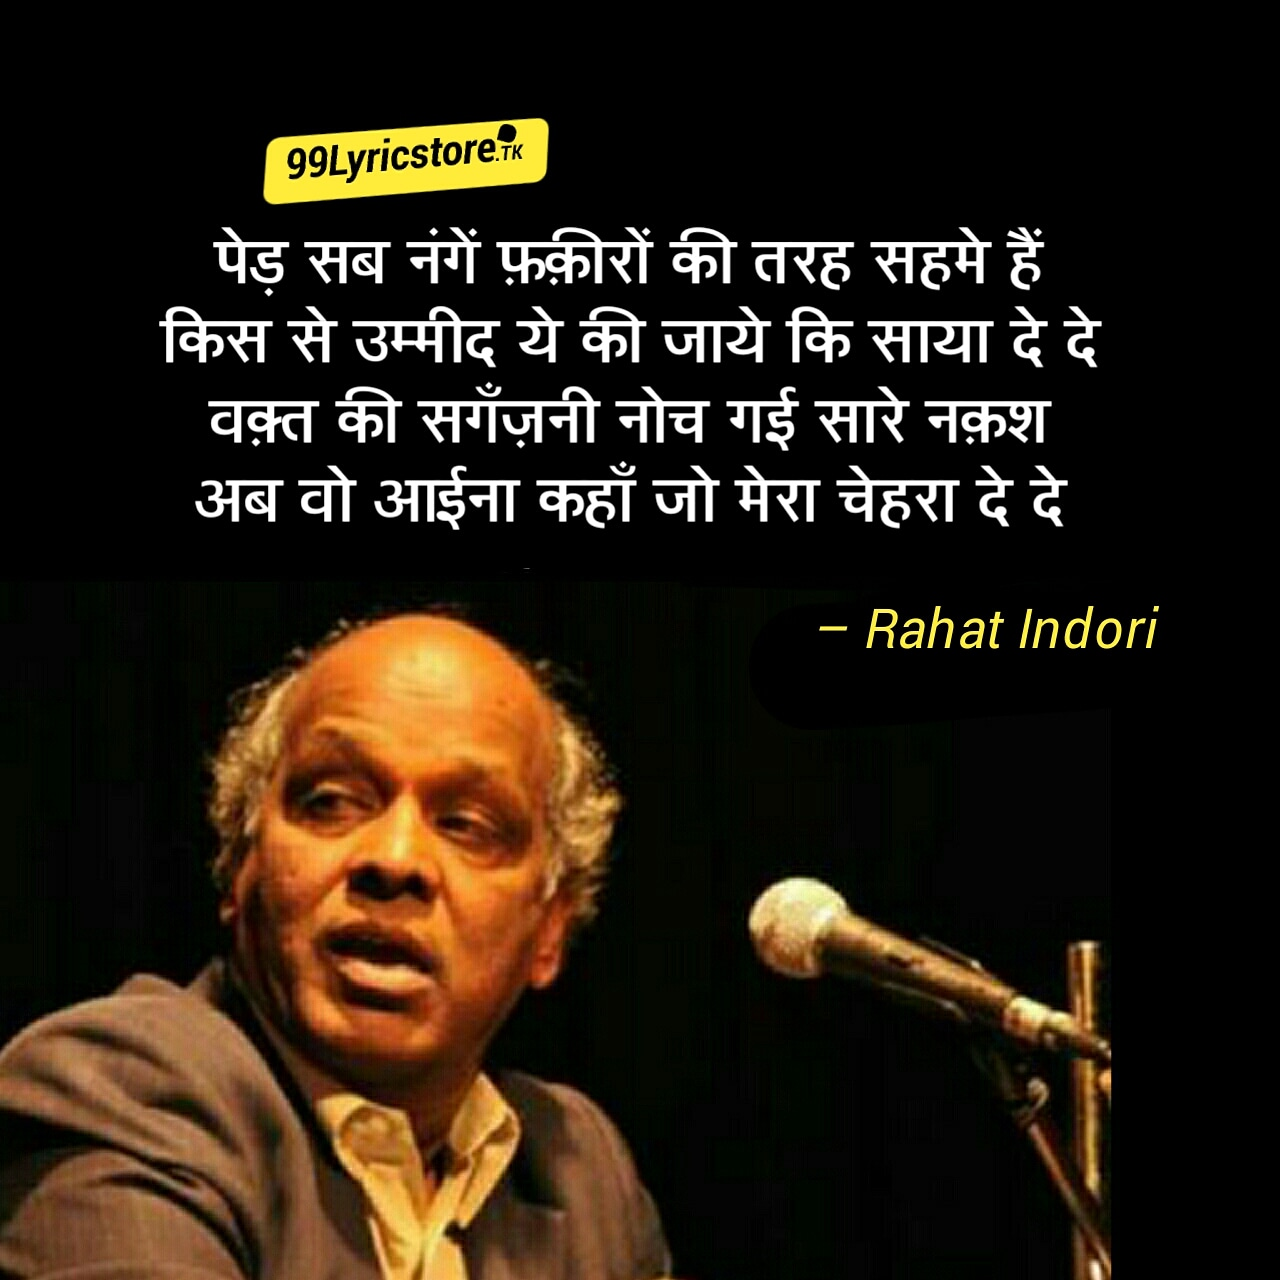 Sehar Me Dhoondh Raha Hoon Ki Sahara De De' written and performed by Rahat Indori. This poetry is best Ghazal and Shayari of Rahat Indori.